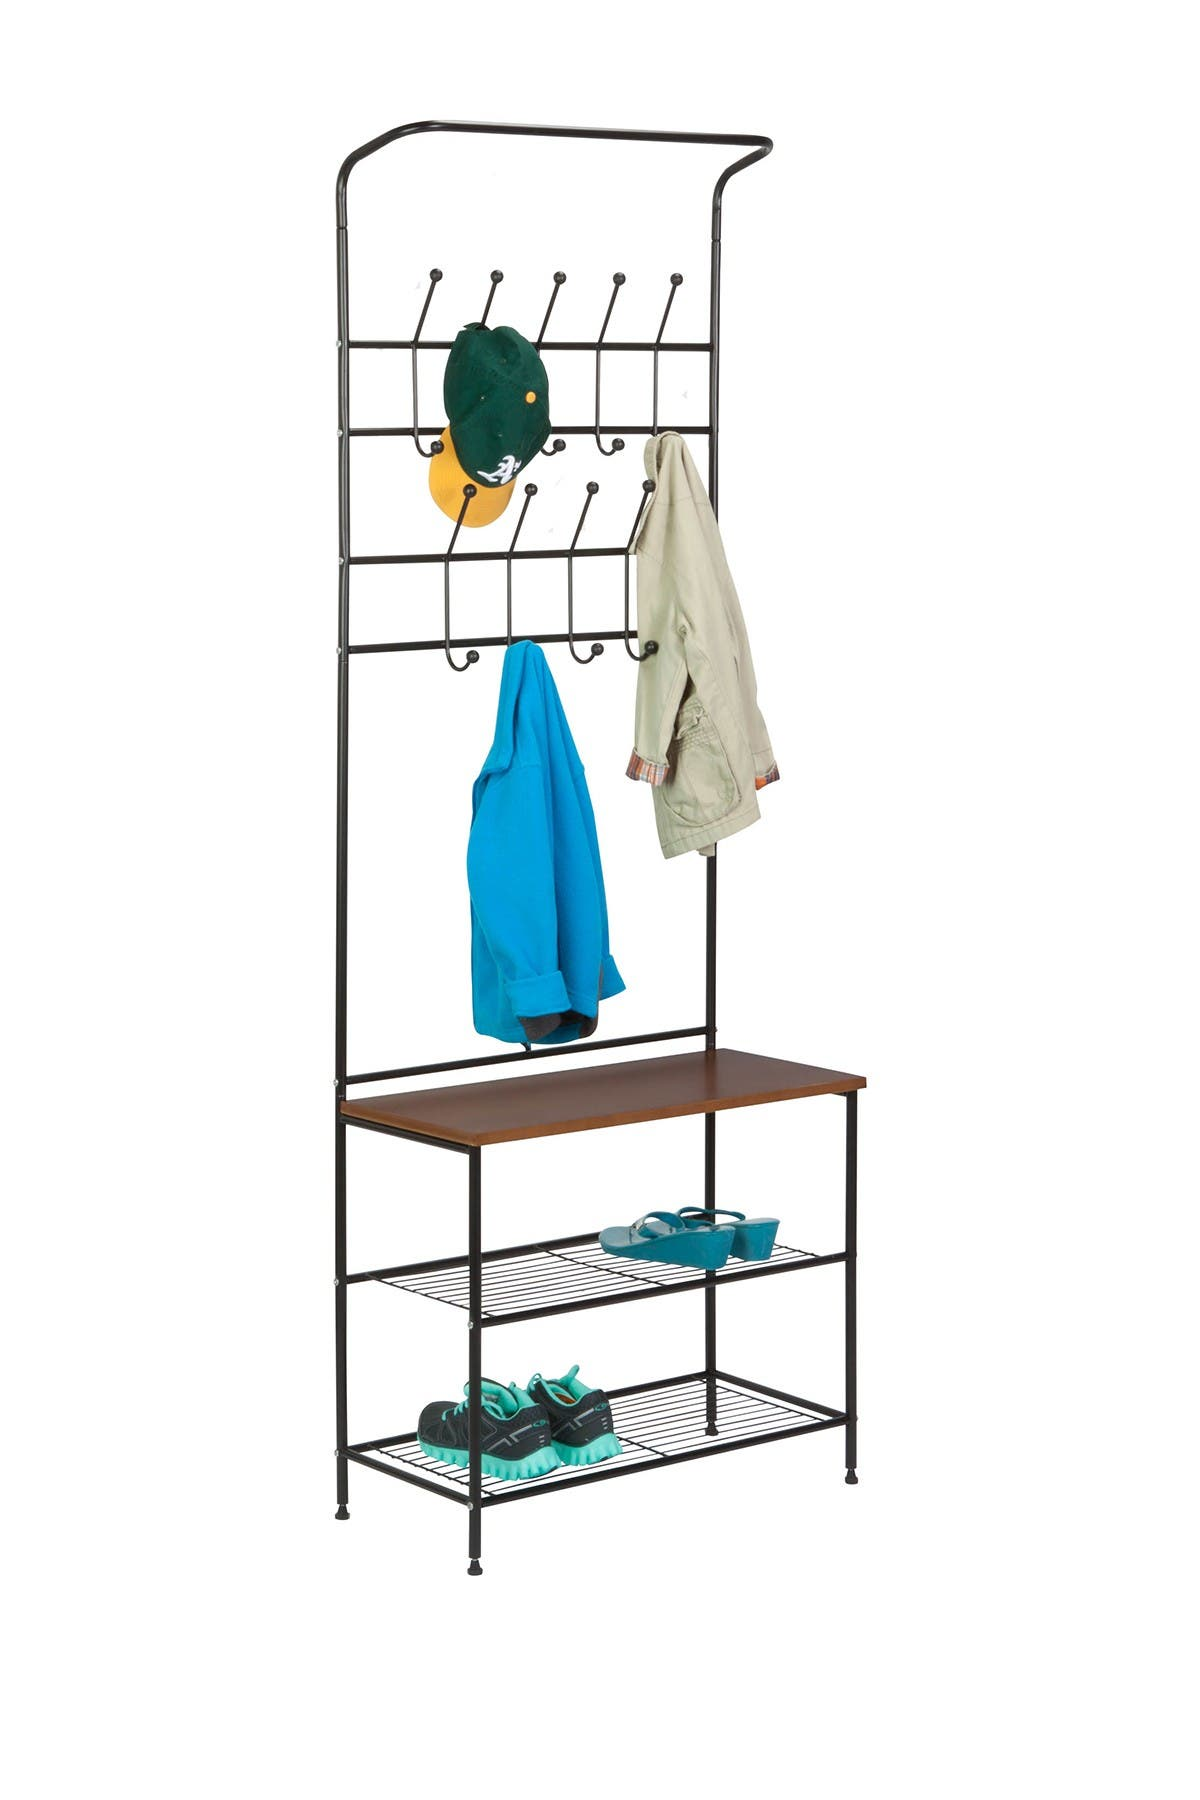 Image of Honey-Can-Do Black/Cherry Entryway Storage Valet